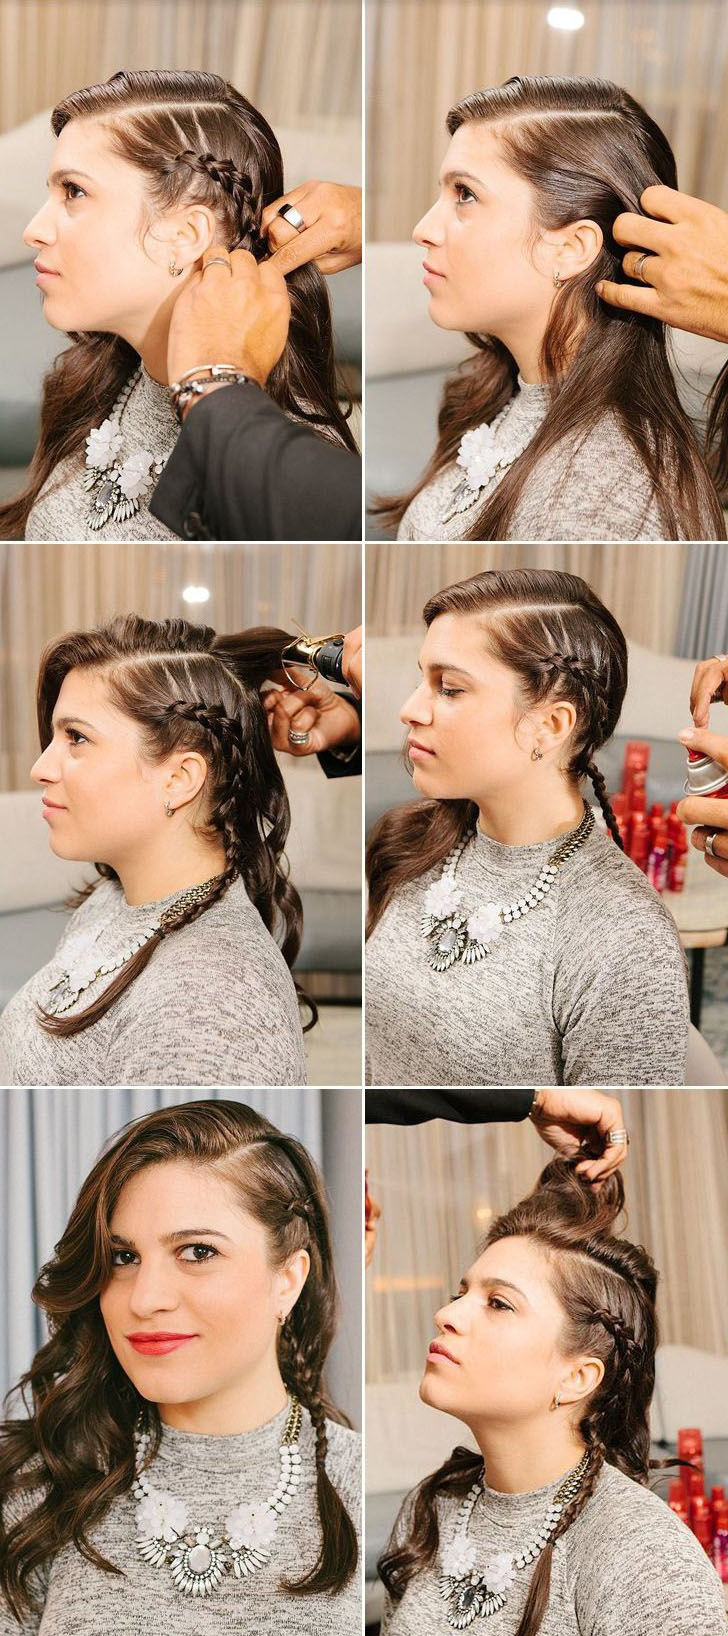 Favorite Faux Undercut Braided Hairstyles With Faux Undercut Braided Hairstyle Diy How To (View 2 of 20)